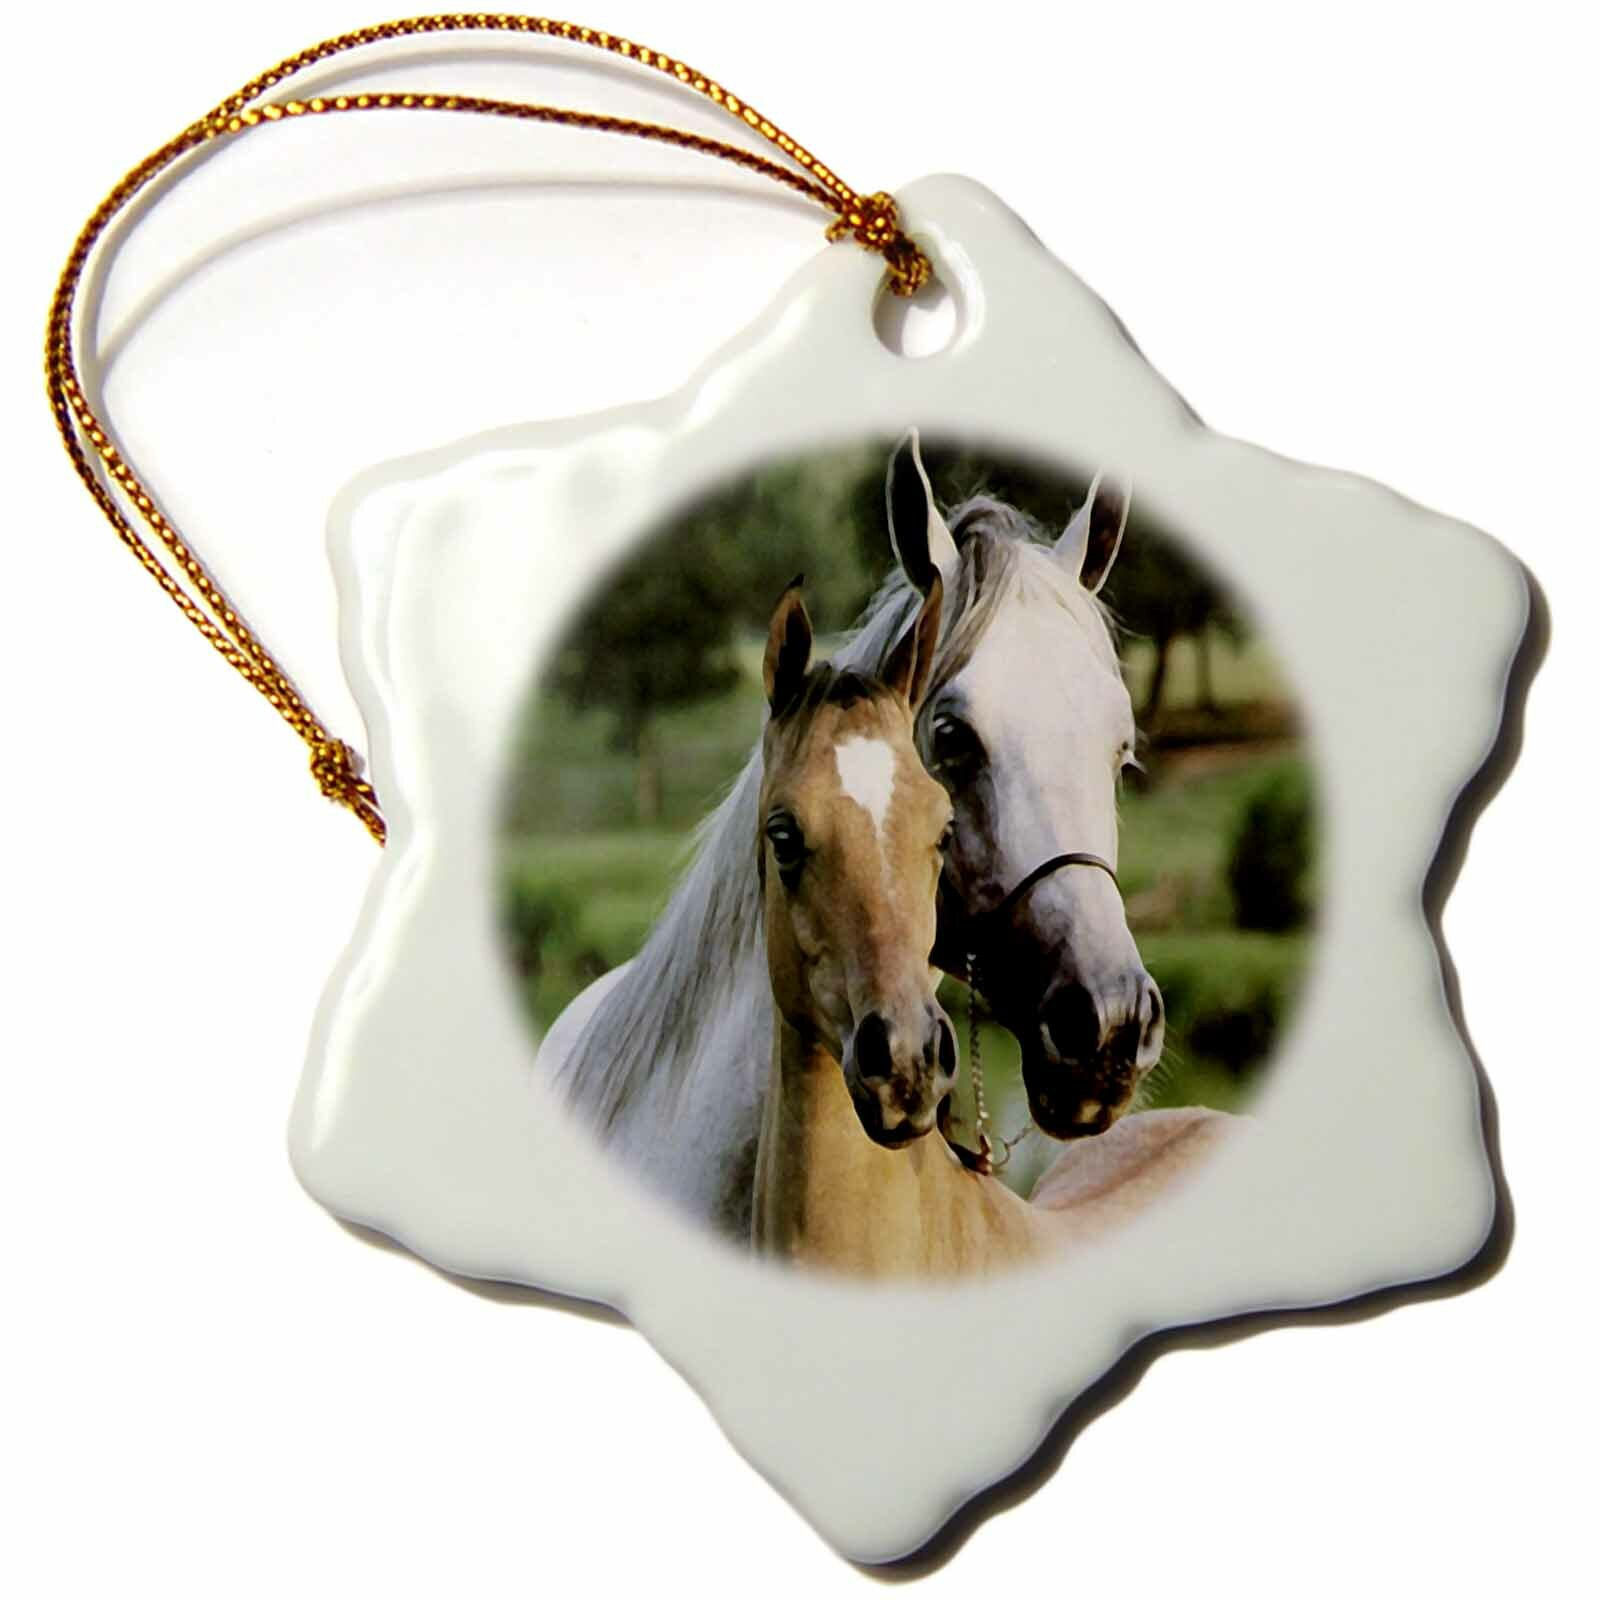 The Holiday Aisle Mother And Baby Horse Holiday Shaped Ornament Wayfair